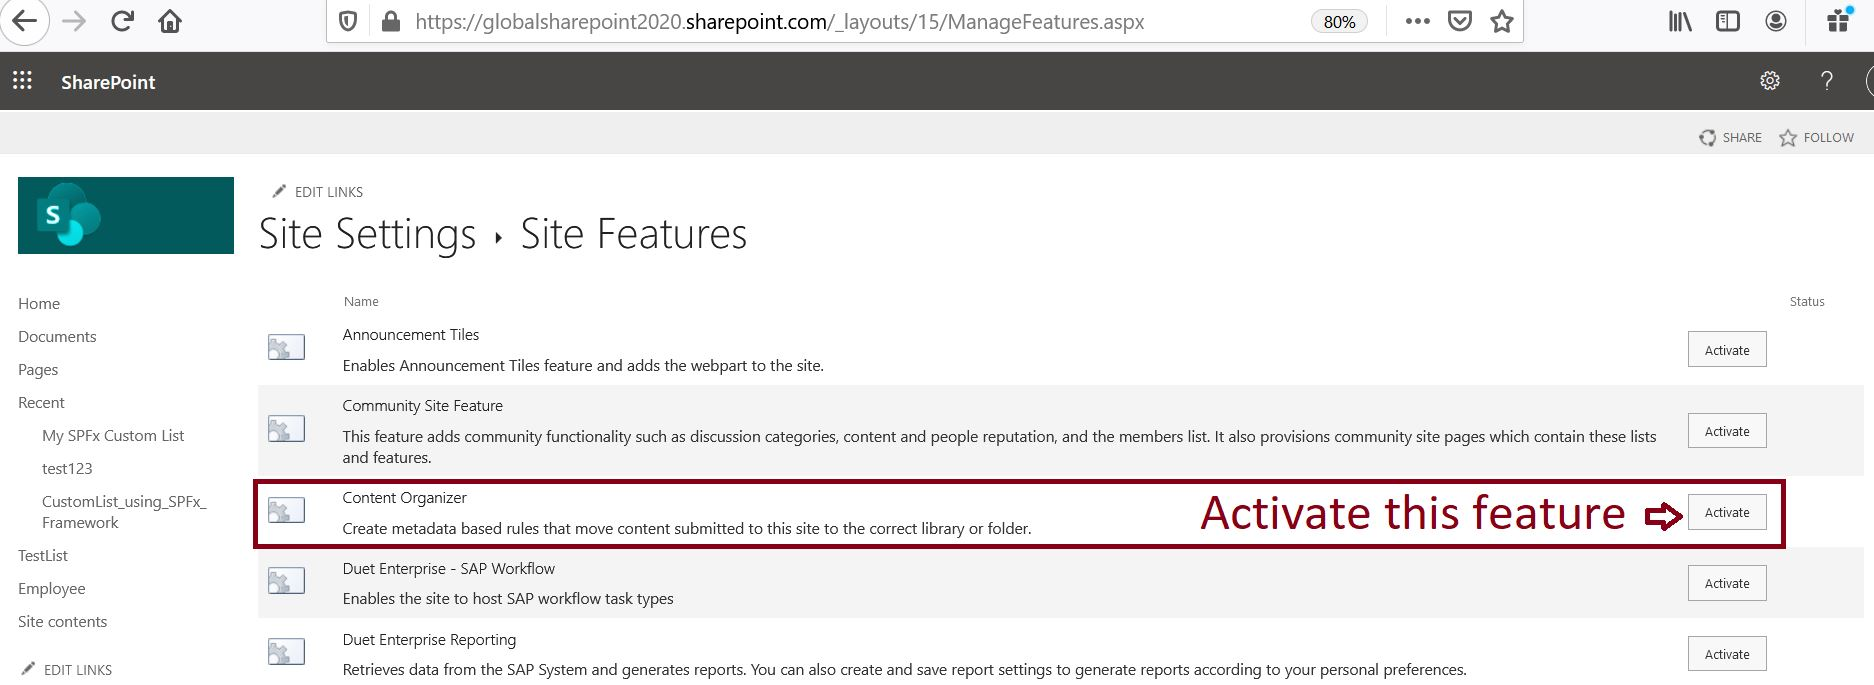 Activate content organizer site level feature in SharePoint Online